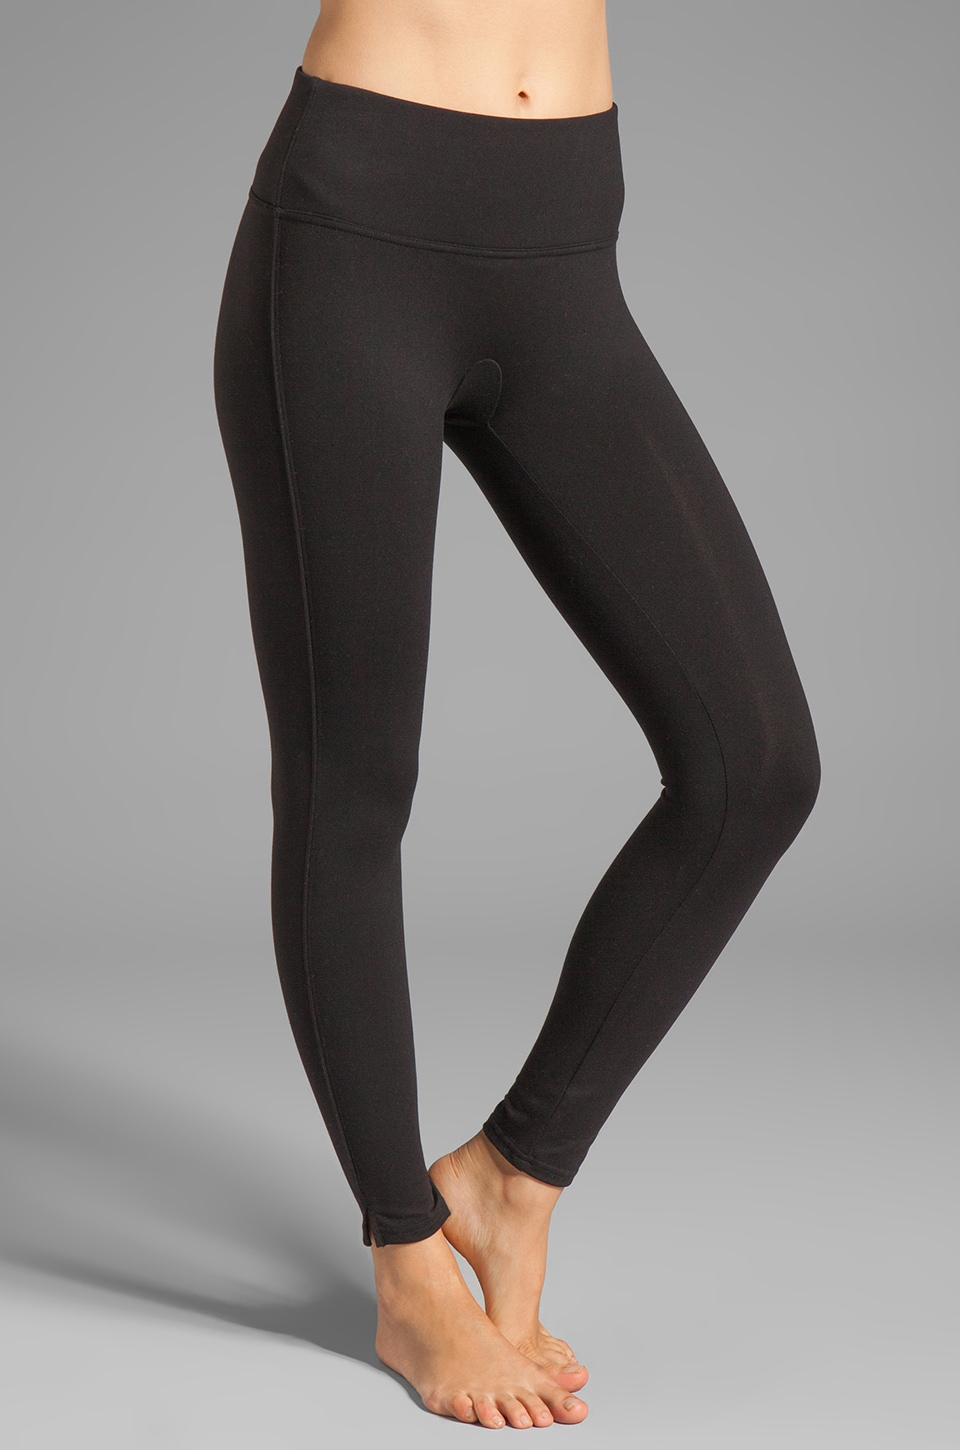 SPANX Structured Legging in Black